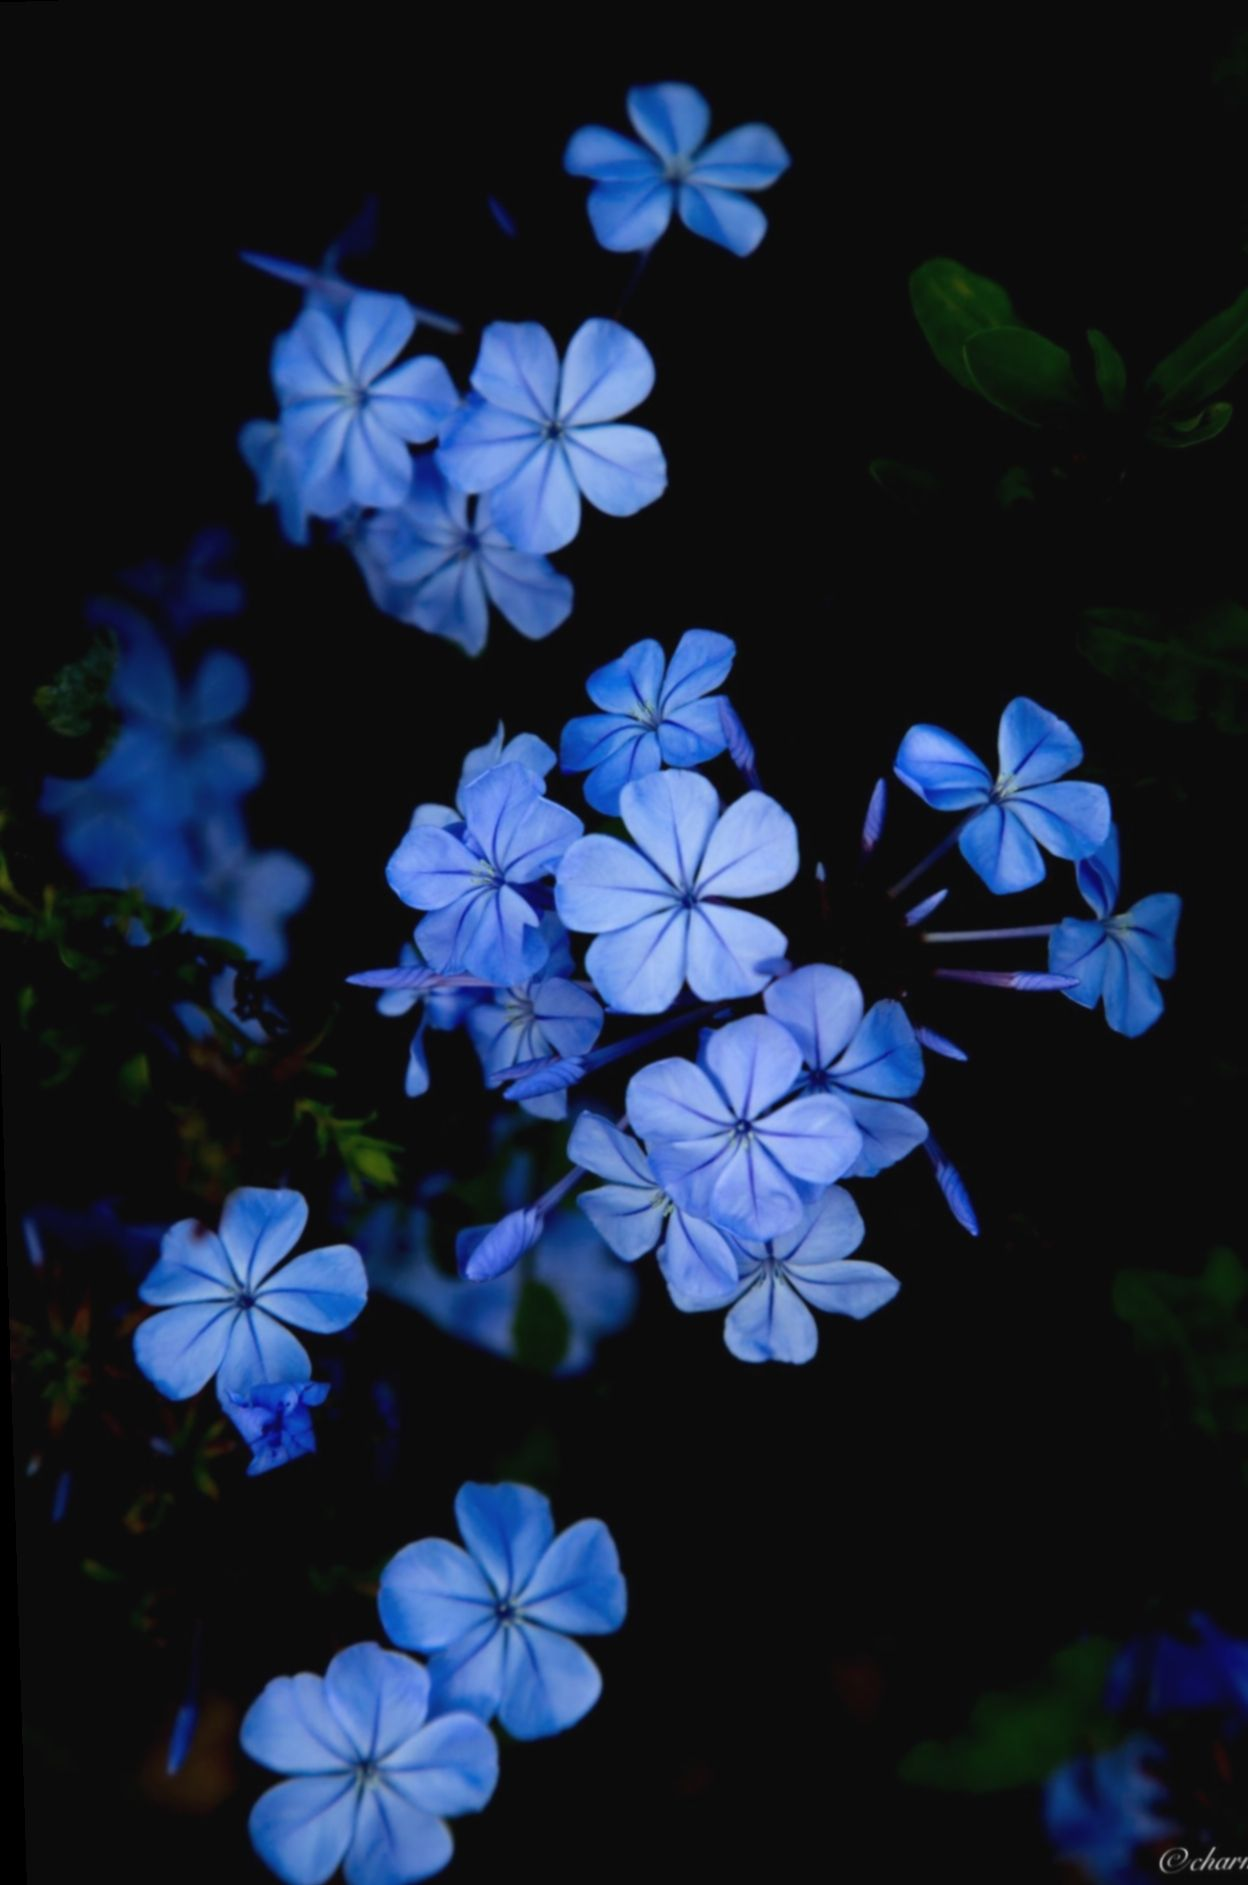 Wallpaper Blue Aesthetic Dark Lion Nature Photo Blue Flower Painting Blue Flower Wallpaper Dark Blue Flowers